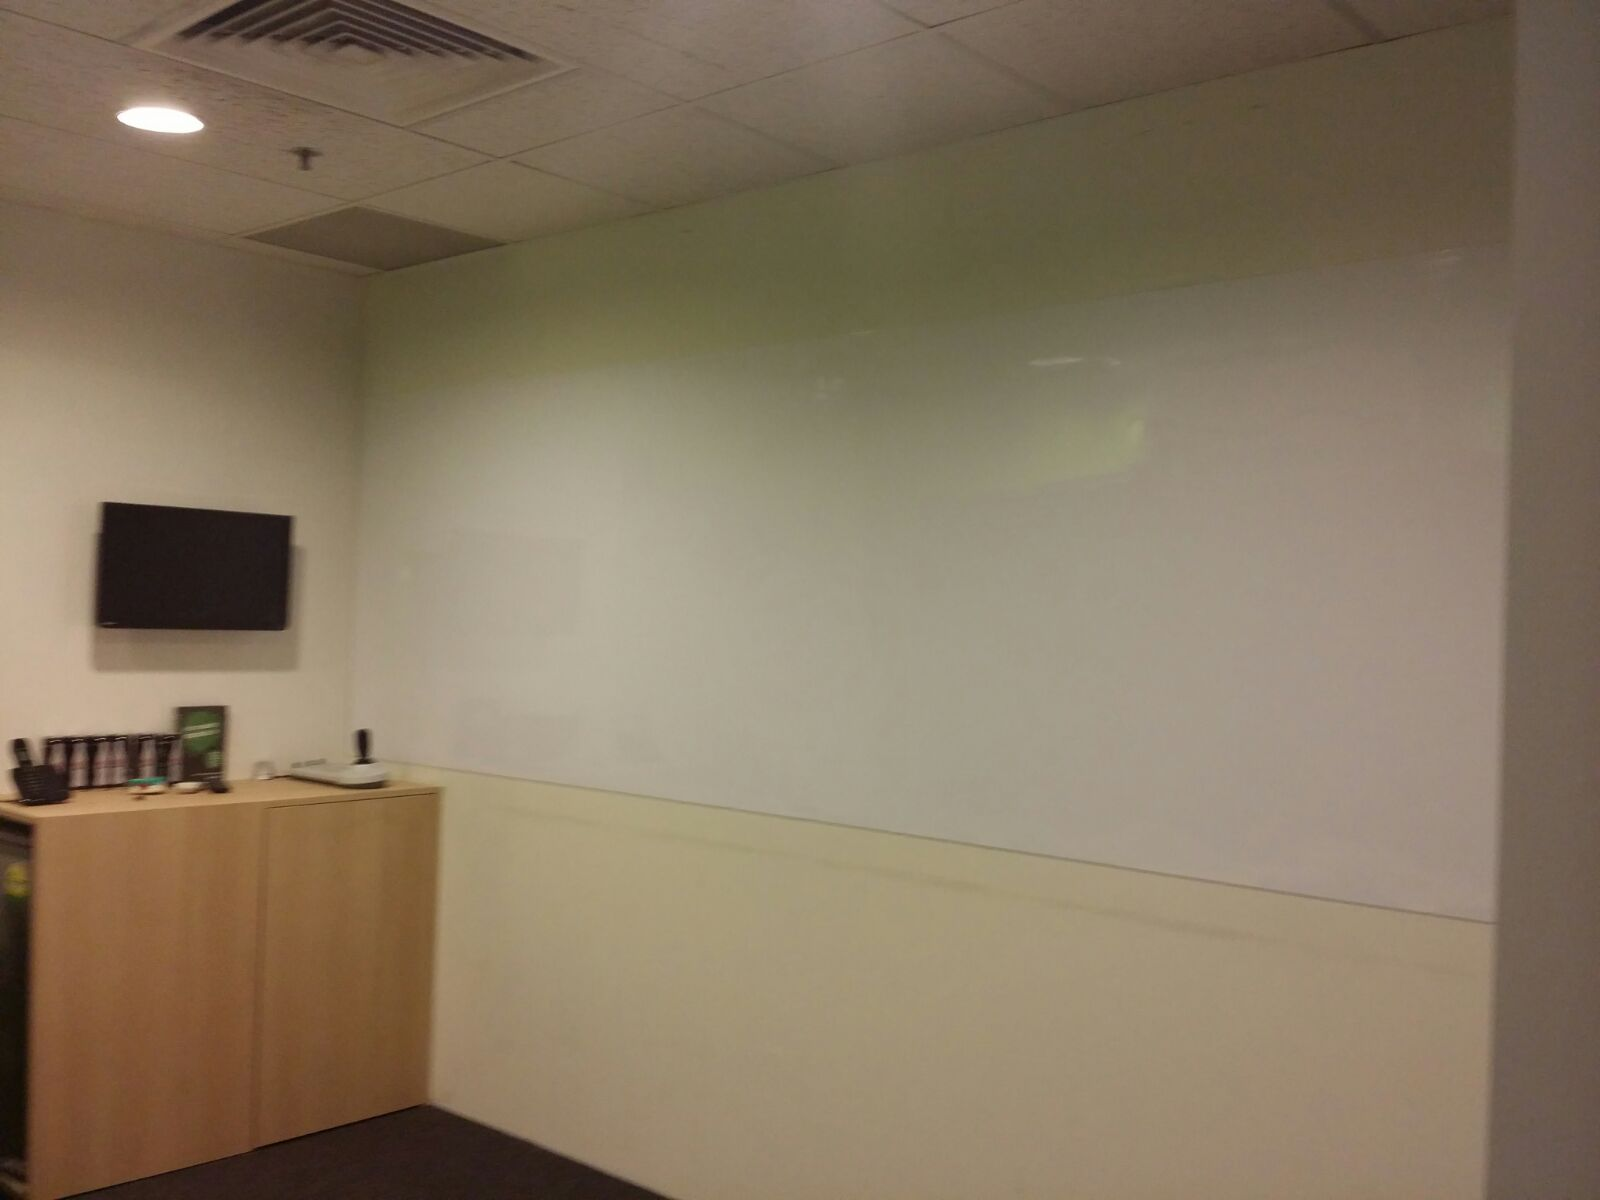 Whiteboards magnetic whiteboards dry erase singapore dry erase on a board gumiabroncs Gallery